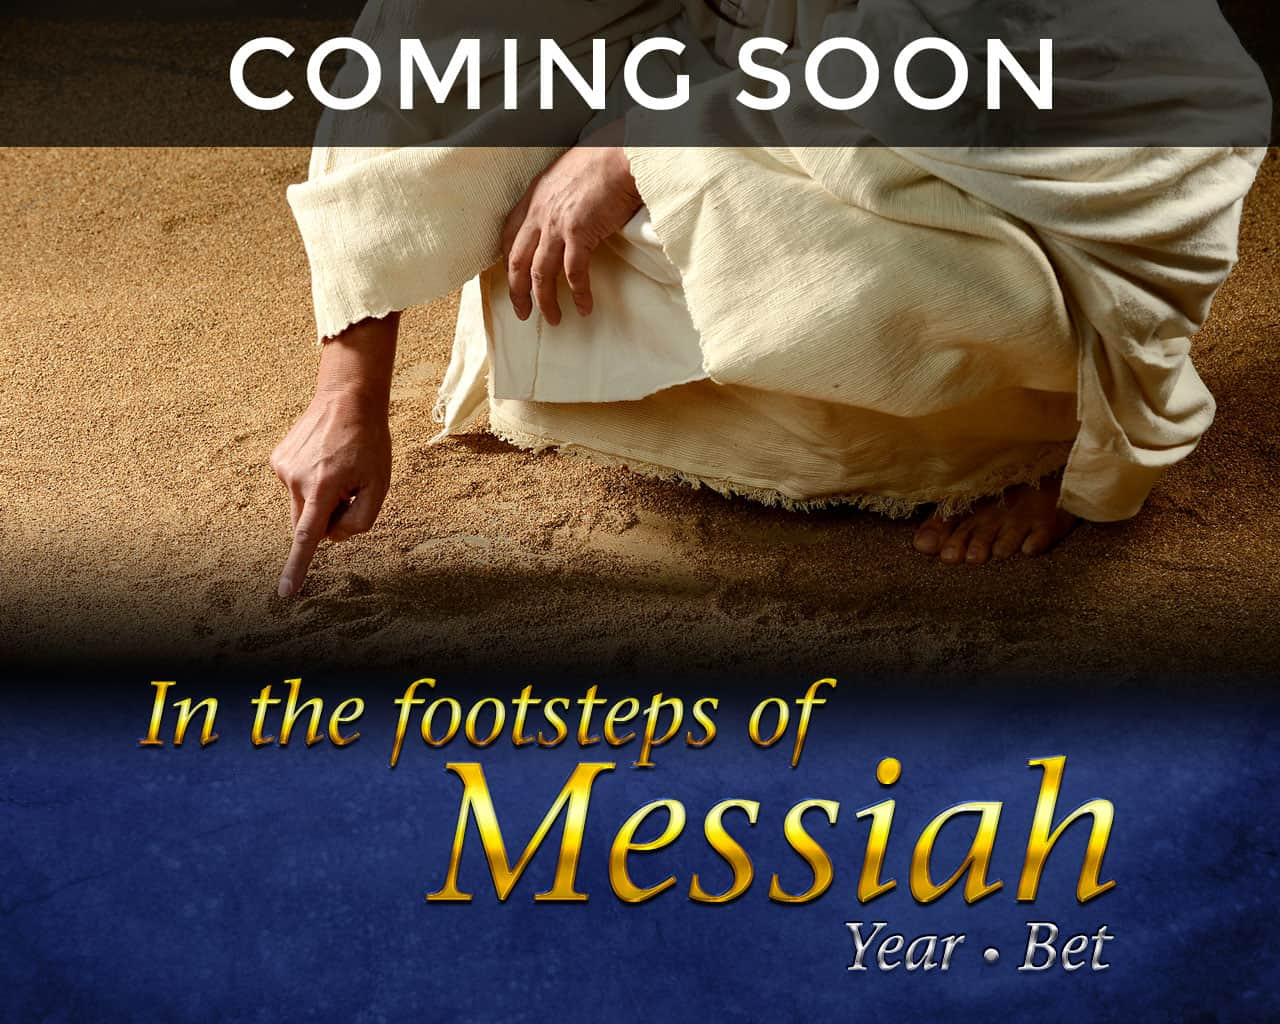 img_shuvu_footsteps_of_messiah_1280x1024_ENG